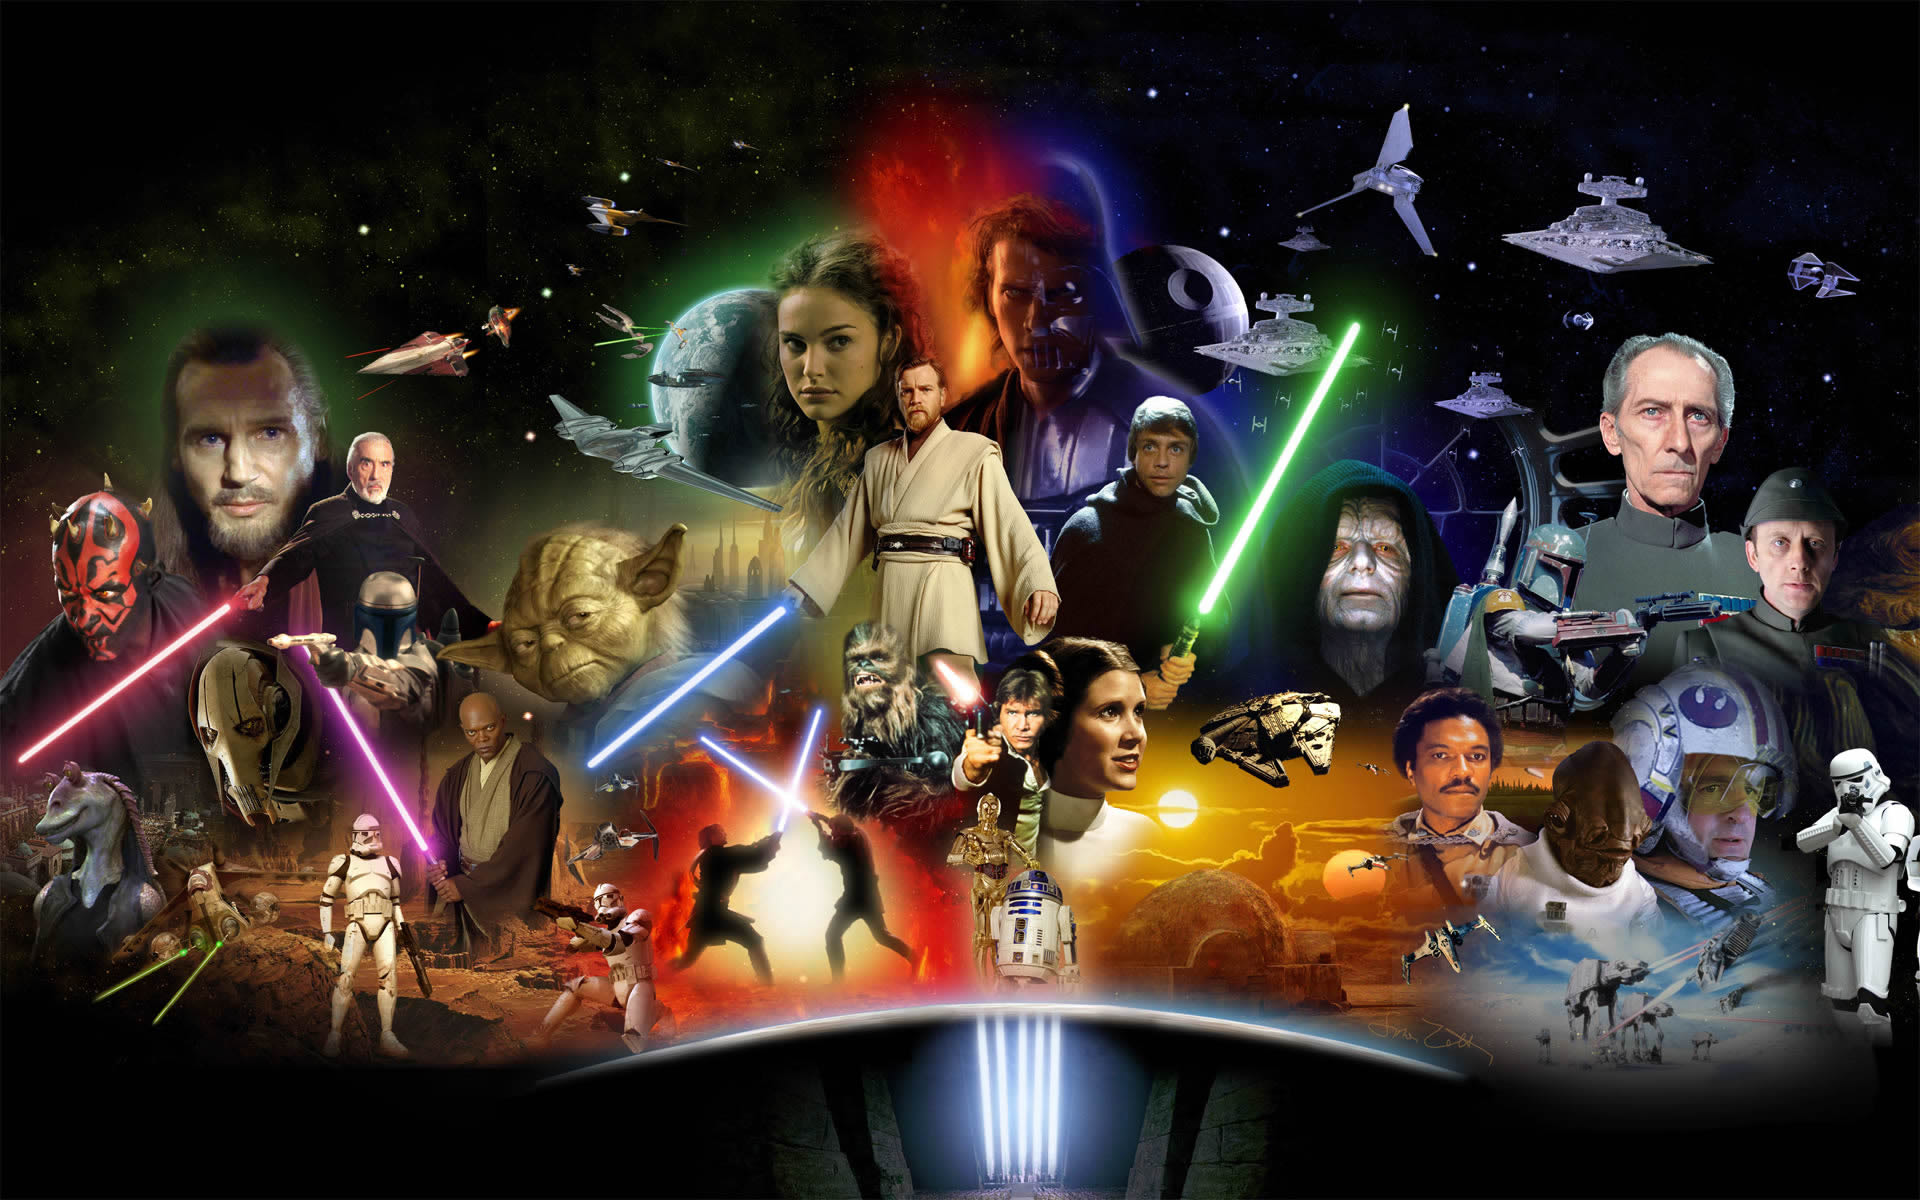 40 Epic Star Wars Wallpapers 3d Digital Paintings Movies Videogames Wallpapercoolvibe Digital Art